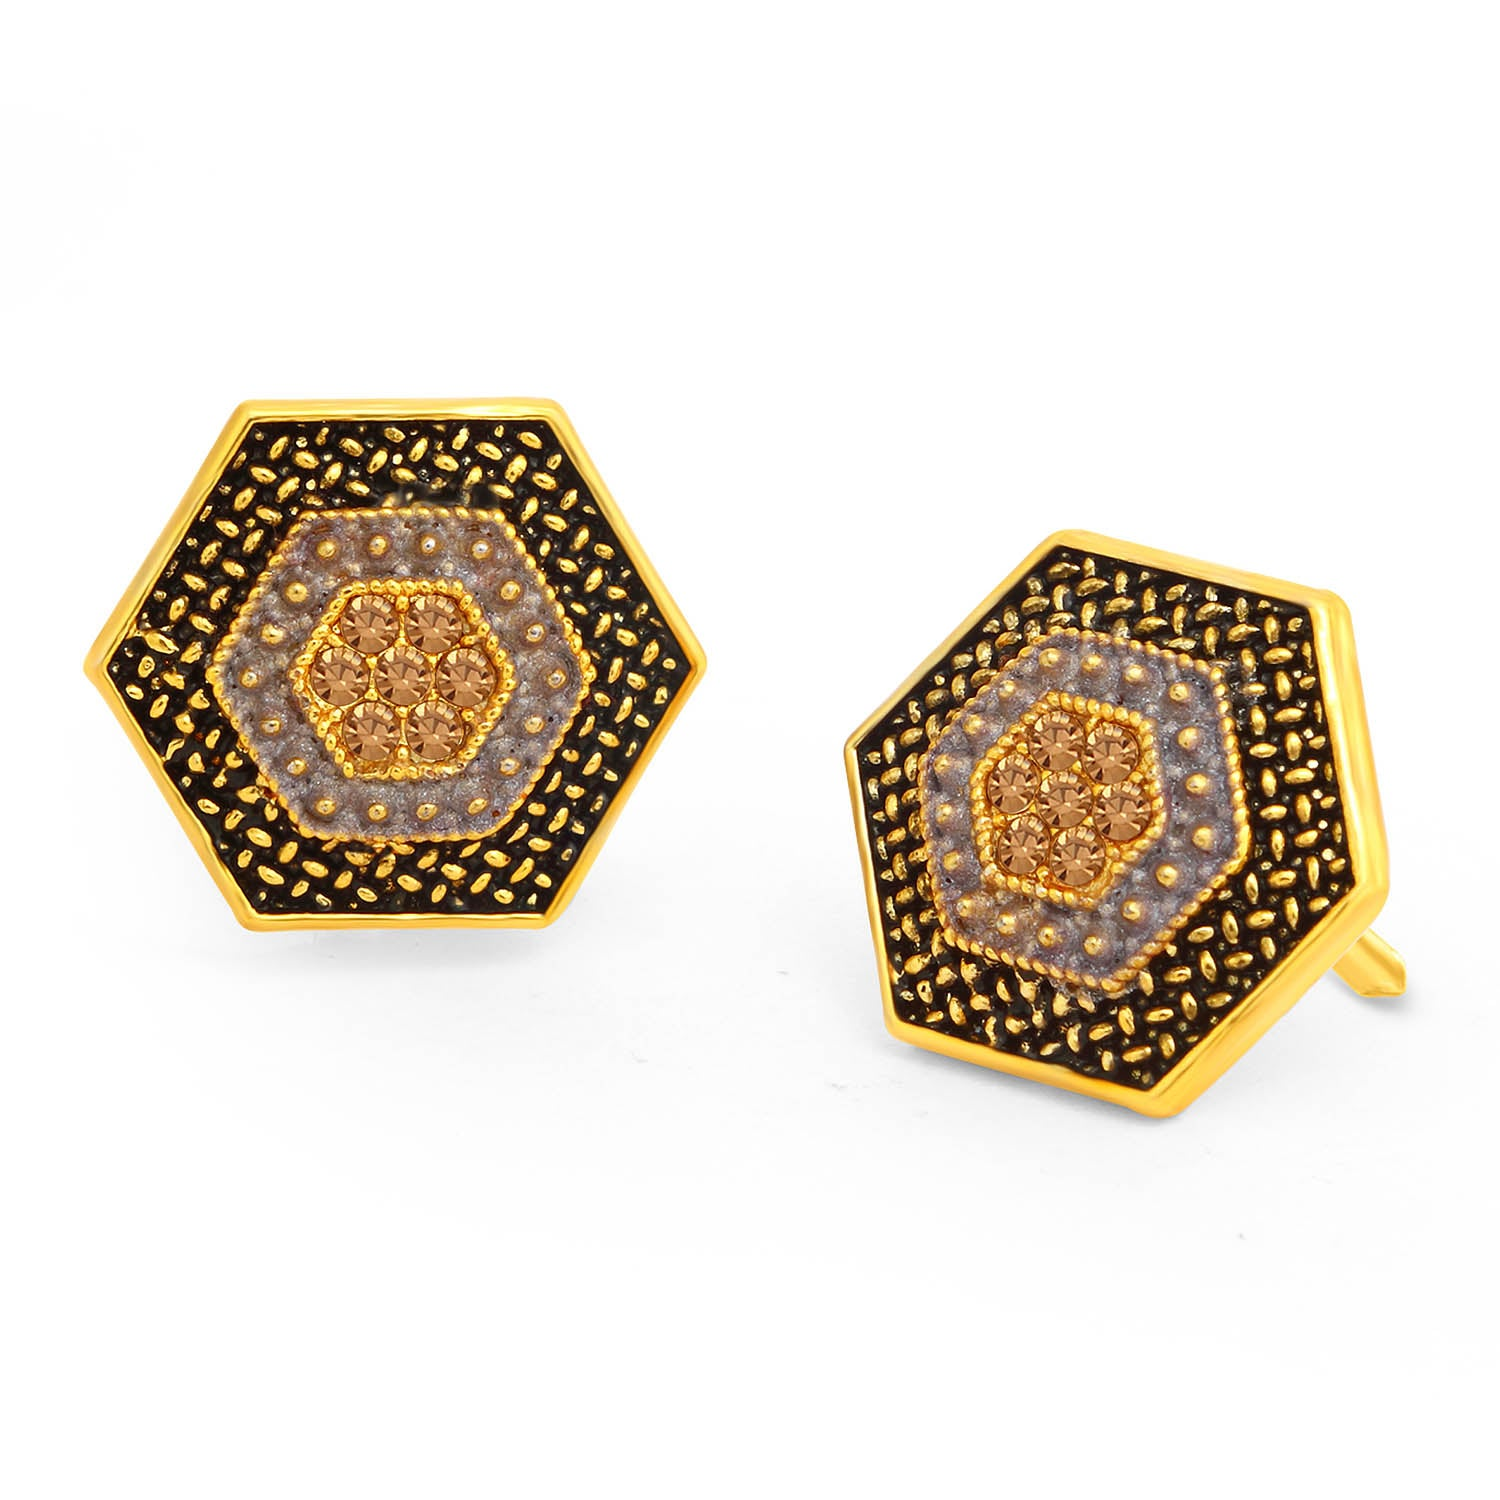 Sukkhi Precious LCT Stone Gold Plated Hexagon Blue Mint Meena Collection Stud Earring For Women-SUKKHI1-Earring